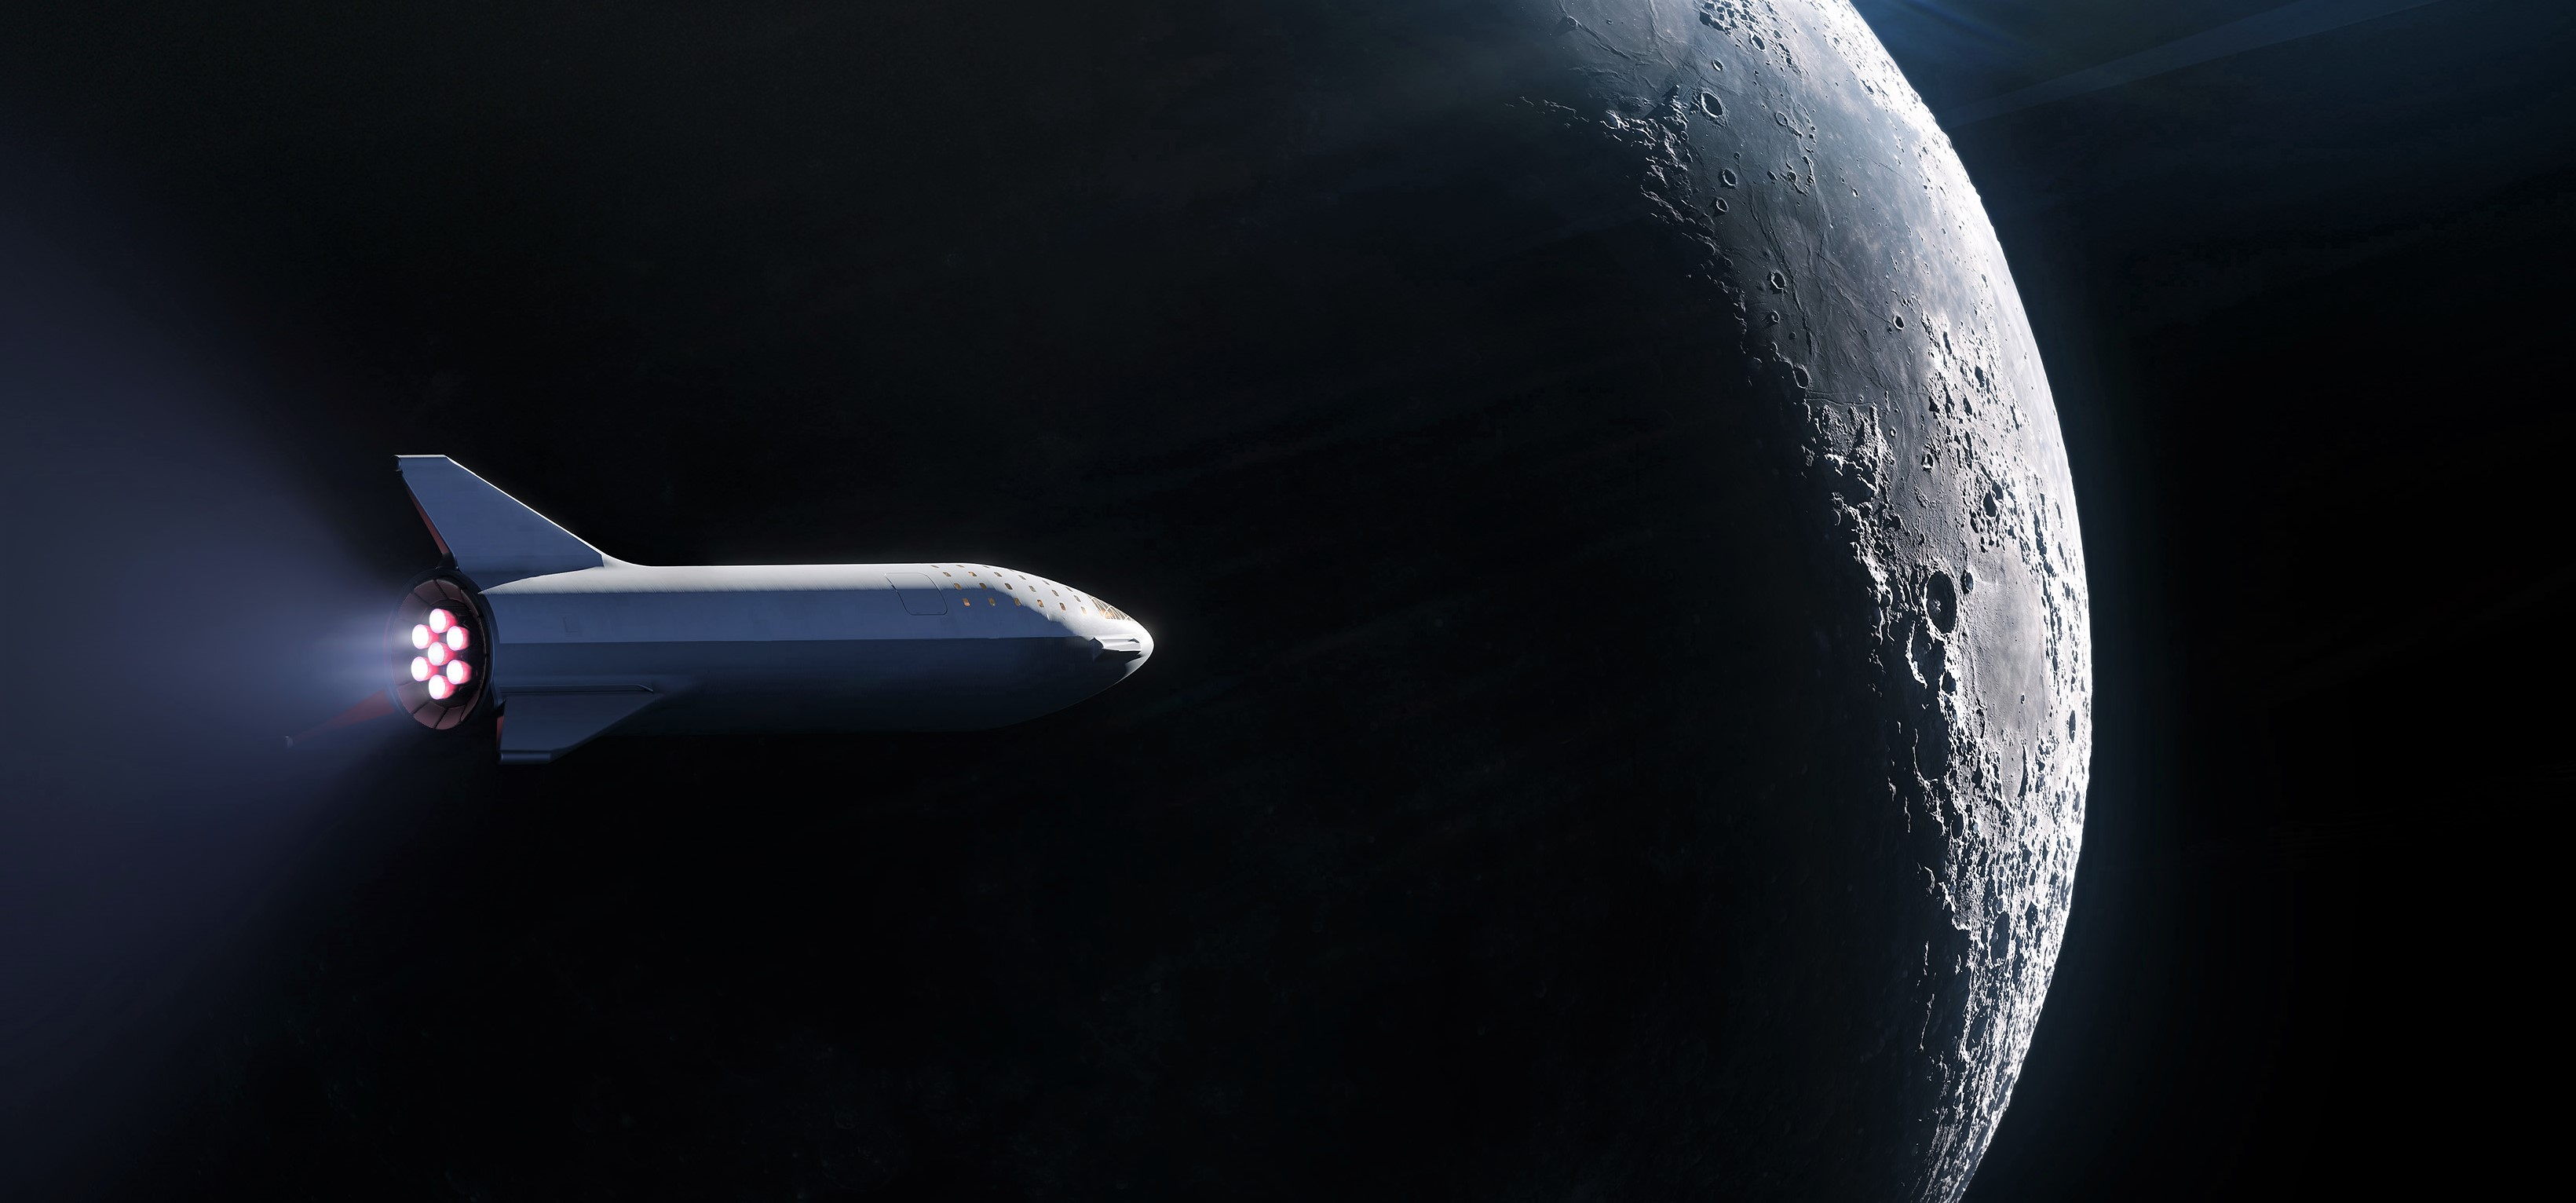 Spacex To Give Bfr Update And Announce A Private Moon Mission On Monday